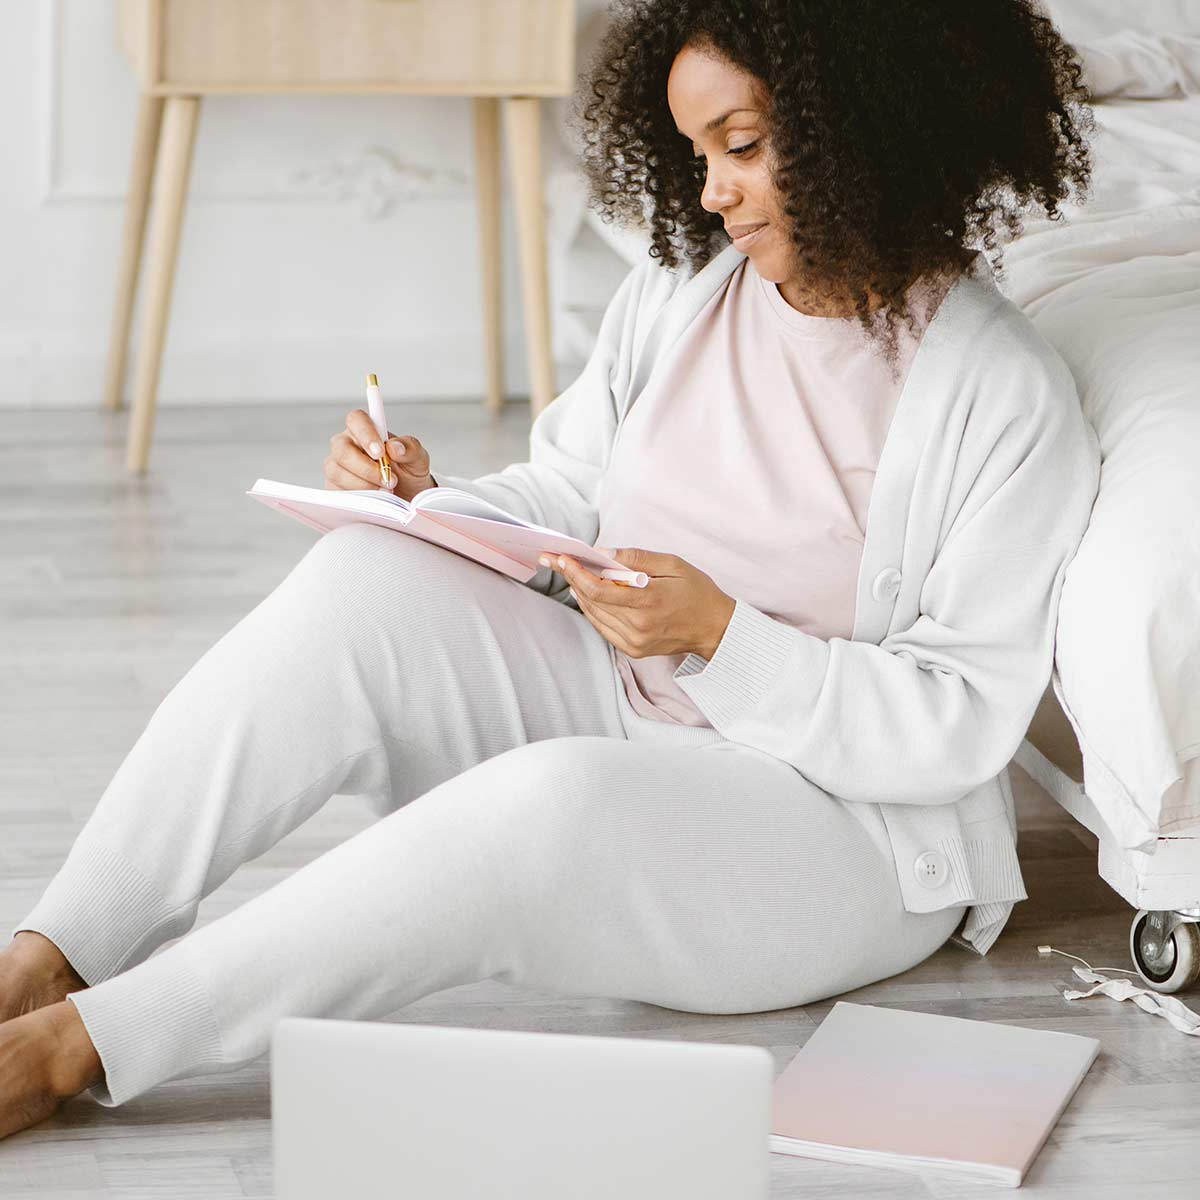 Woman in pink t-shirt, gray sweater and leggings sitting on bedroom floor while writing calming journal prompts in pink journal.